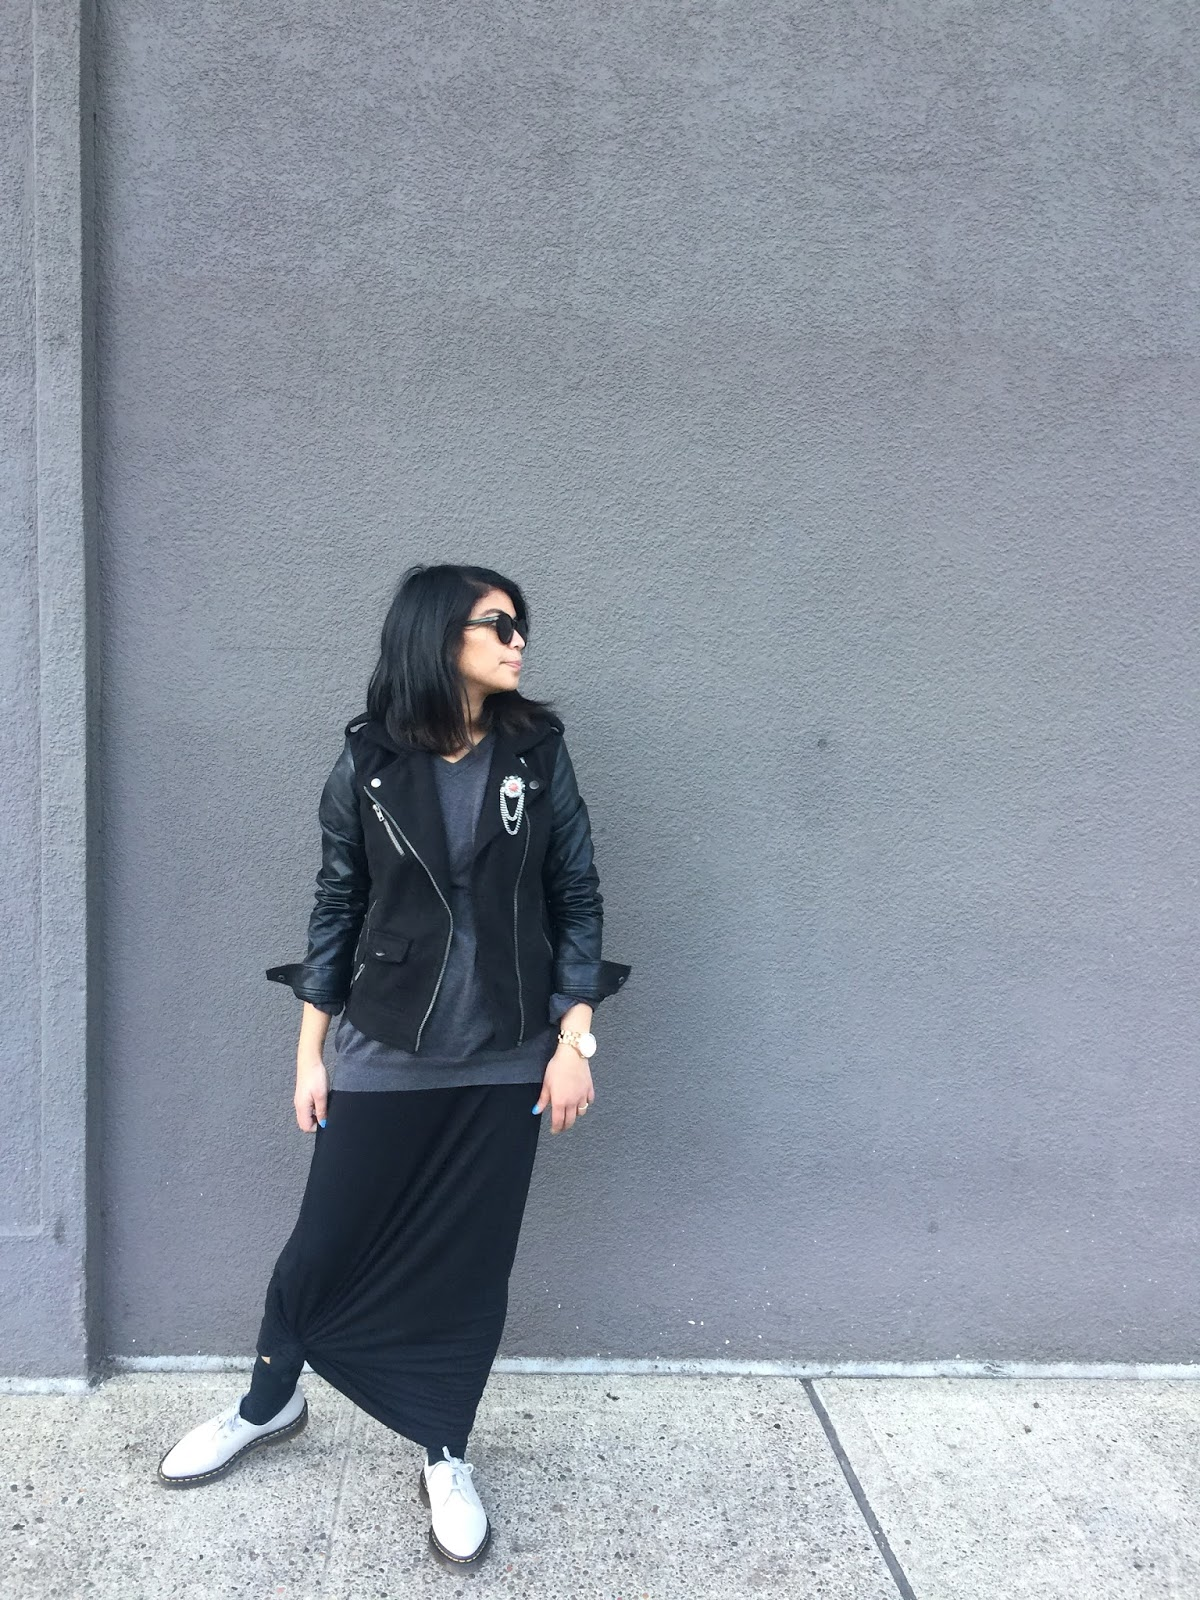 long black dress, black moto jacket, gray doc martens, dr, martens, gray v neck sweater, portland blogger, portland fashion blogger, fblogger, ootd, street style